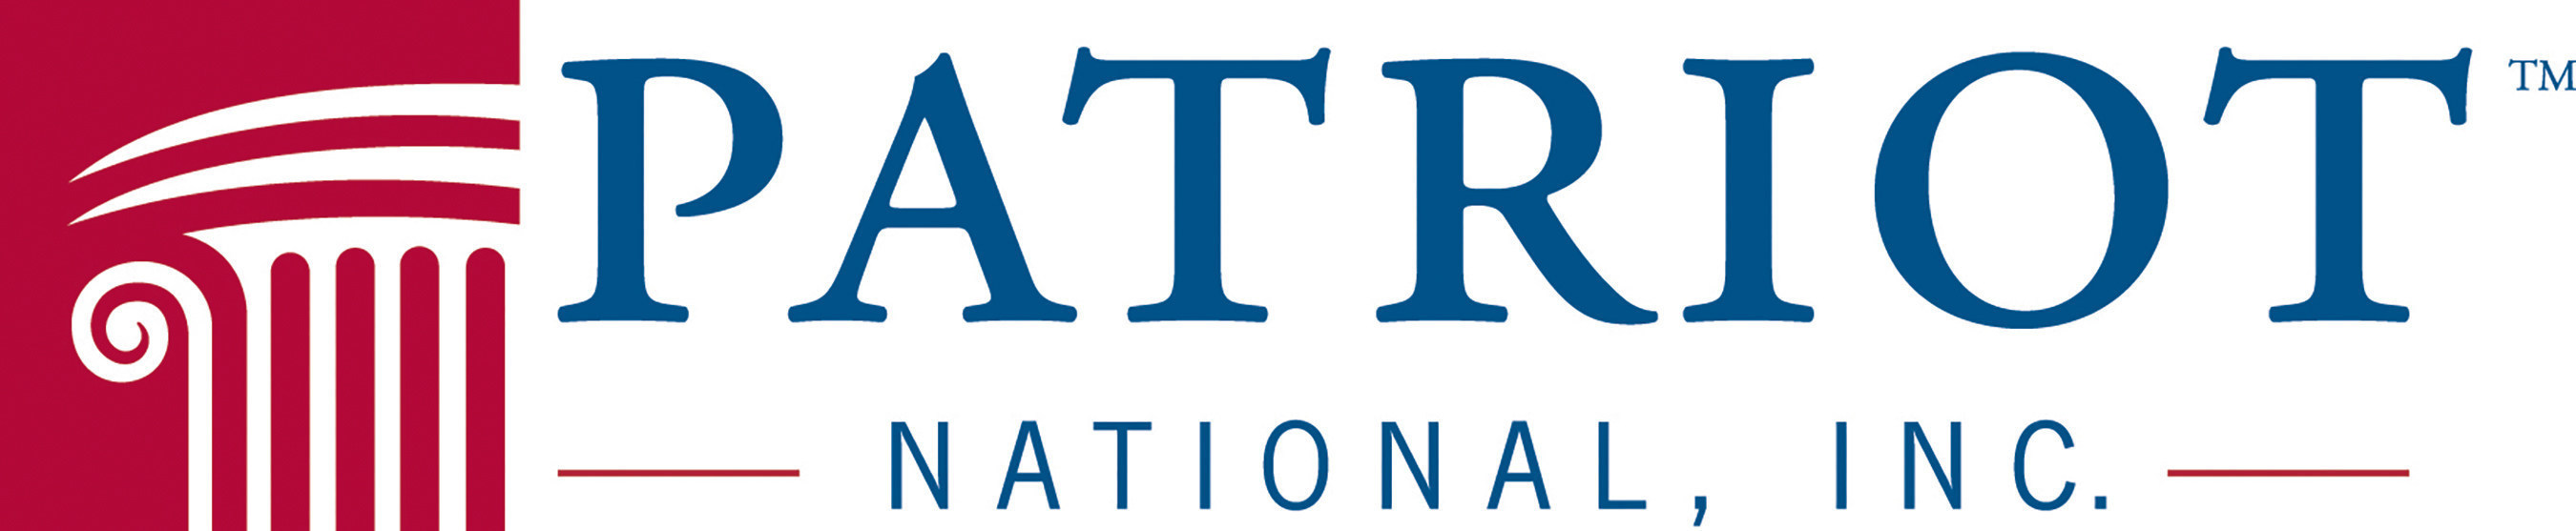 Patriot National, Inc. is a leading provider of technology and outsourced services to the insurance industry. The company was founded by Fort Lauderdale based entrepreneur Steven Michael Mariano.